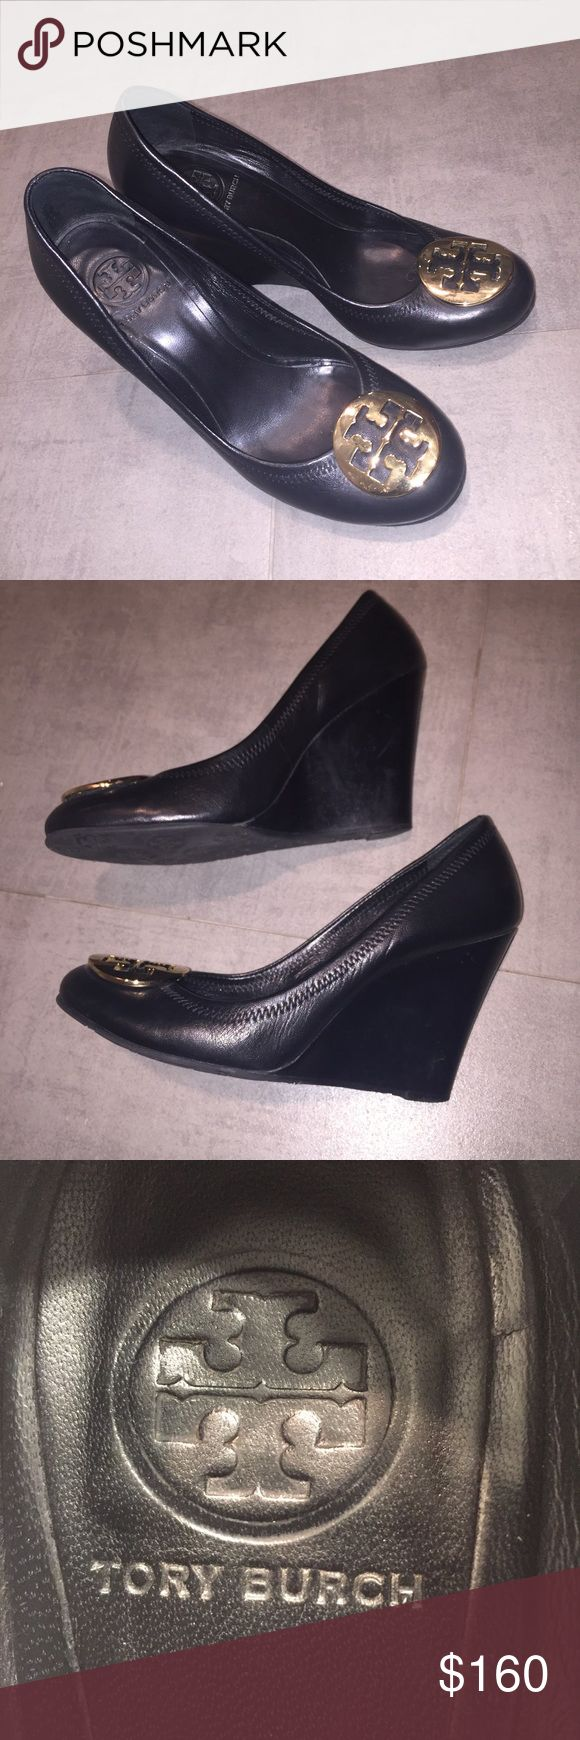 Tory Burch Leather Wedge Pump Black Gold Size 7 Excellent used condition, authentic Tory Burch wedge pumps. Small scuff on back of left heel, otherwise no flaws. Open to reasonable offers! Tory Burch Shoes Wedges